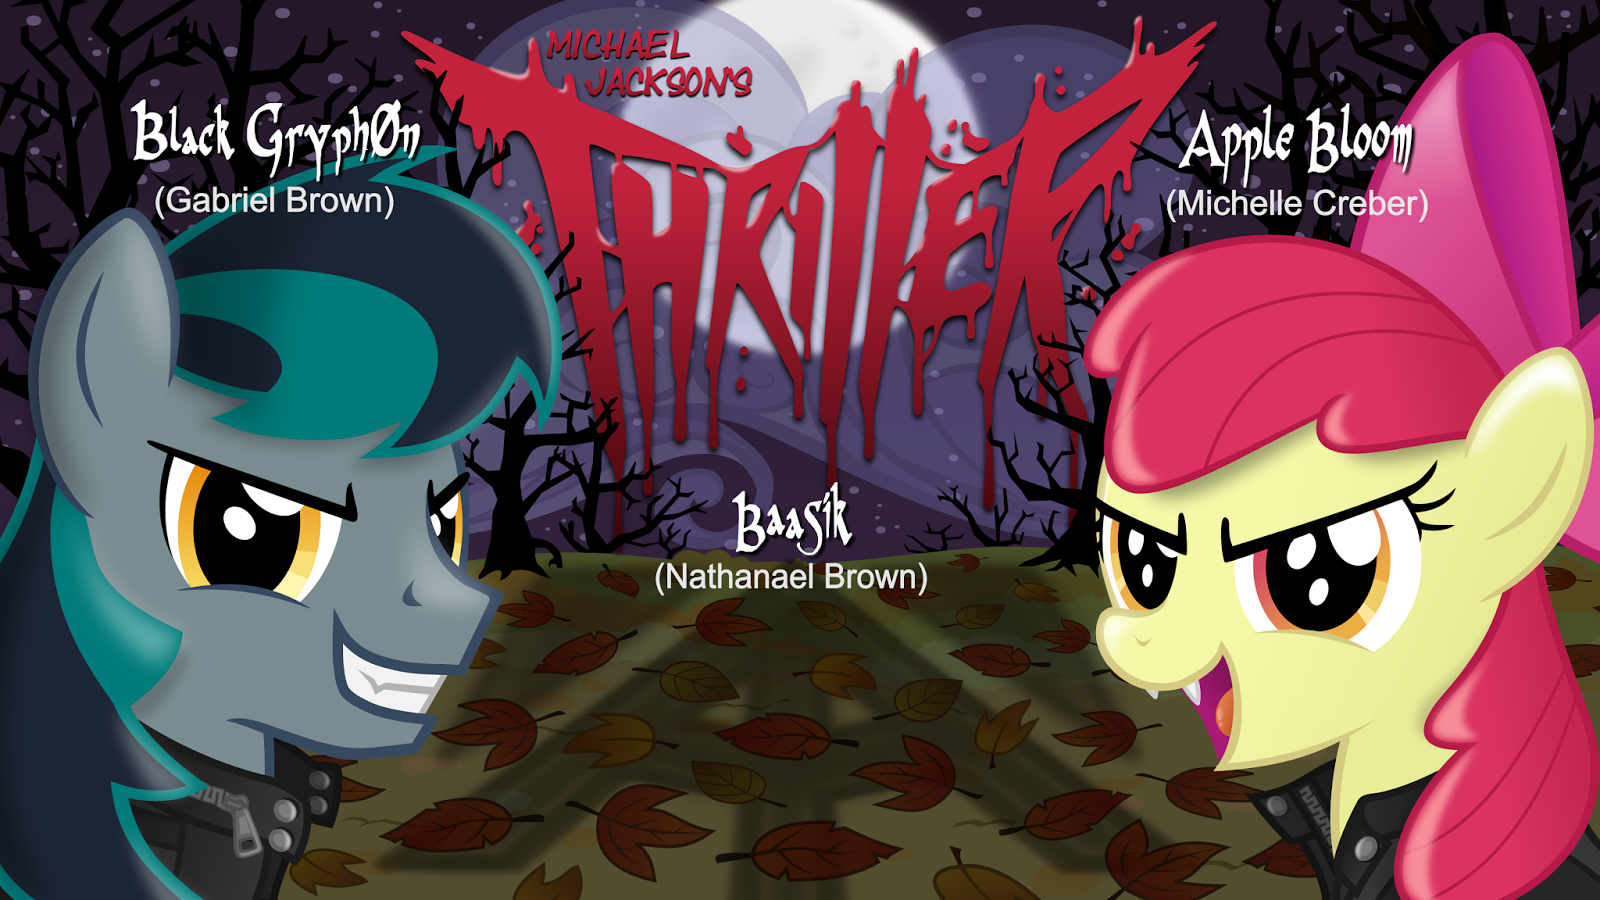 halloween music fest 2013 get spooky equestria daily mlp stuff halloween music fest 2013 get spooky - Spooky Halloween Music Youtube